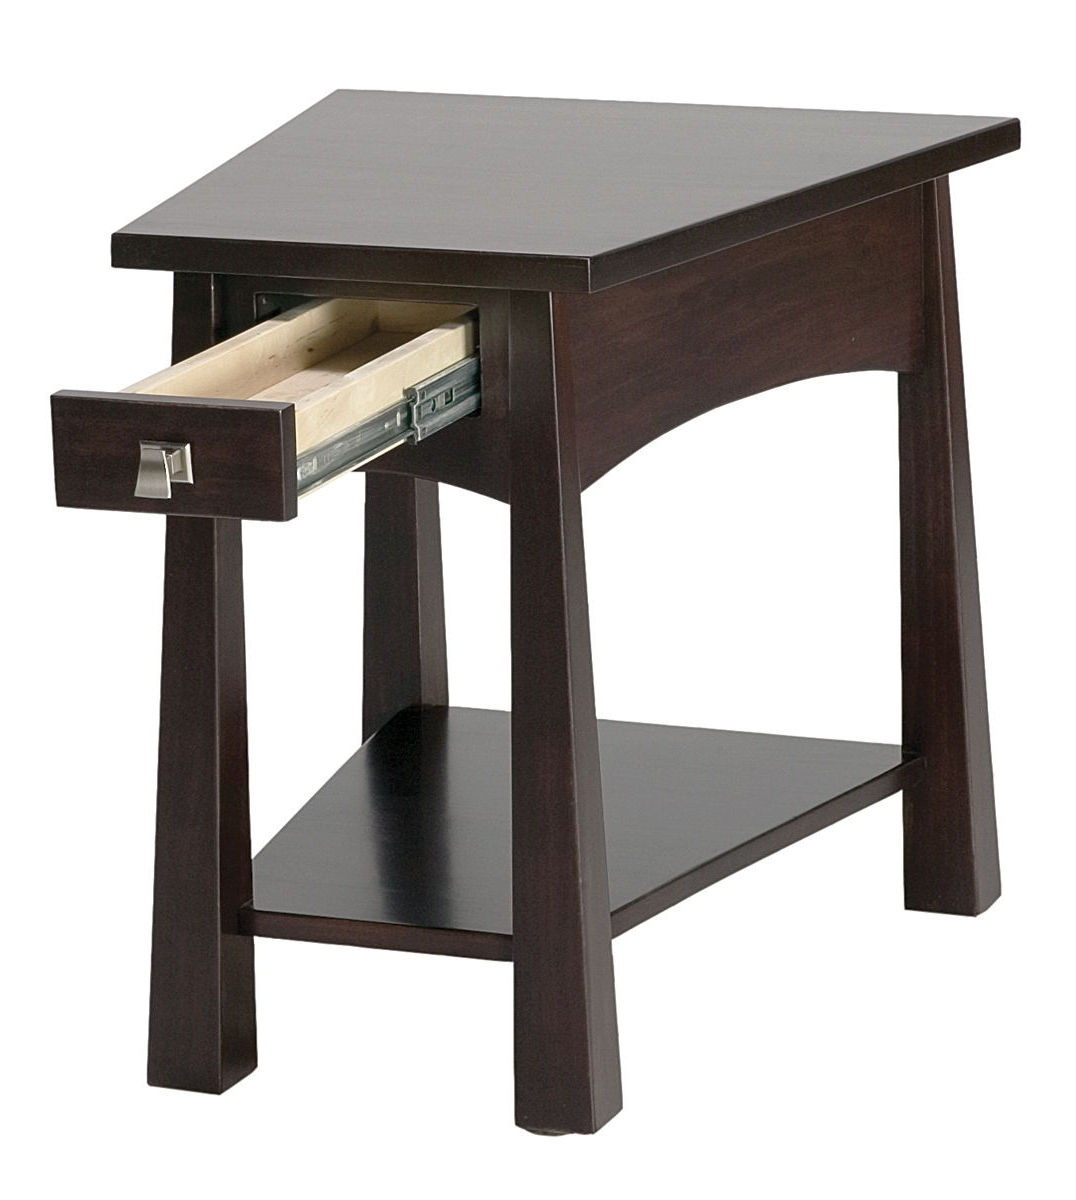 decorating accent tables for living room round end black side long unique small full size modern wooden furnitures pottery barn glass table west elm couch corner desk coffee and